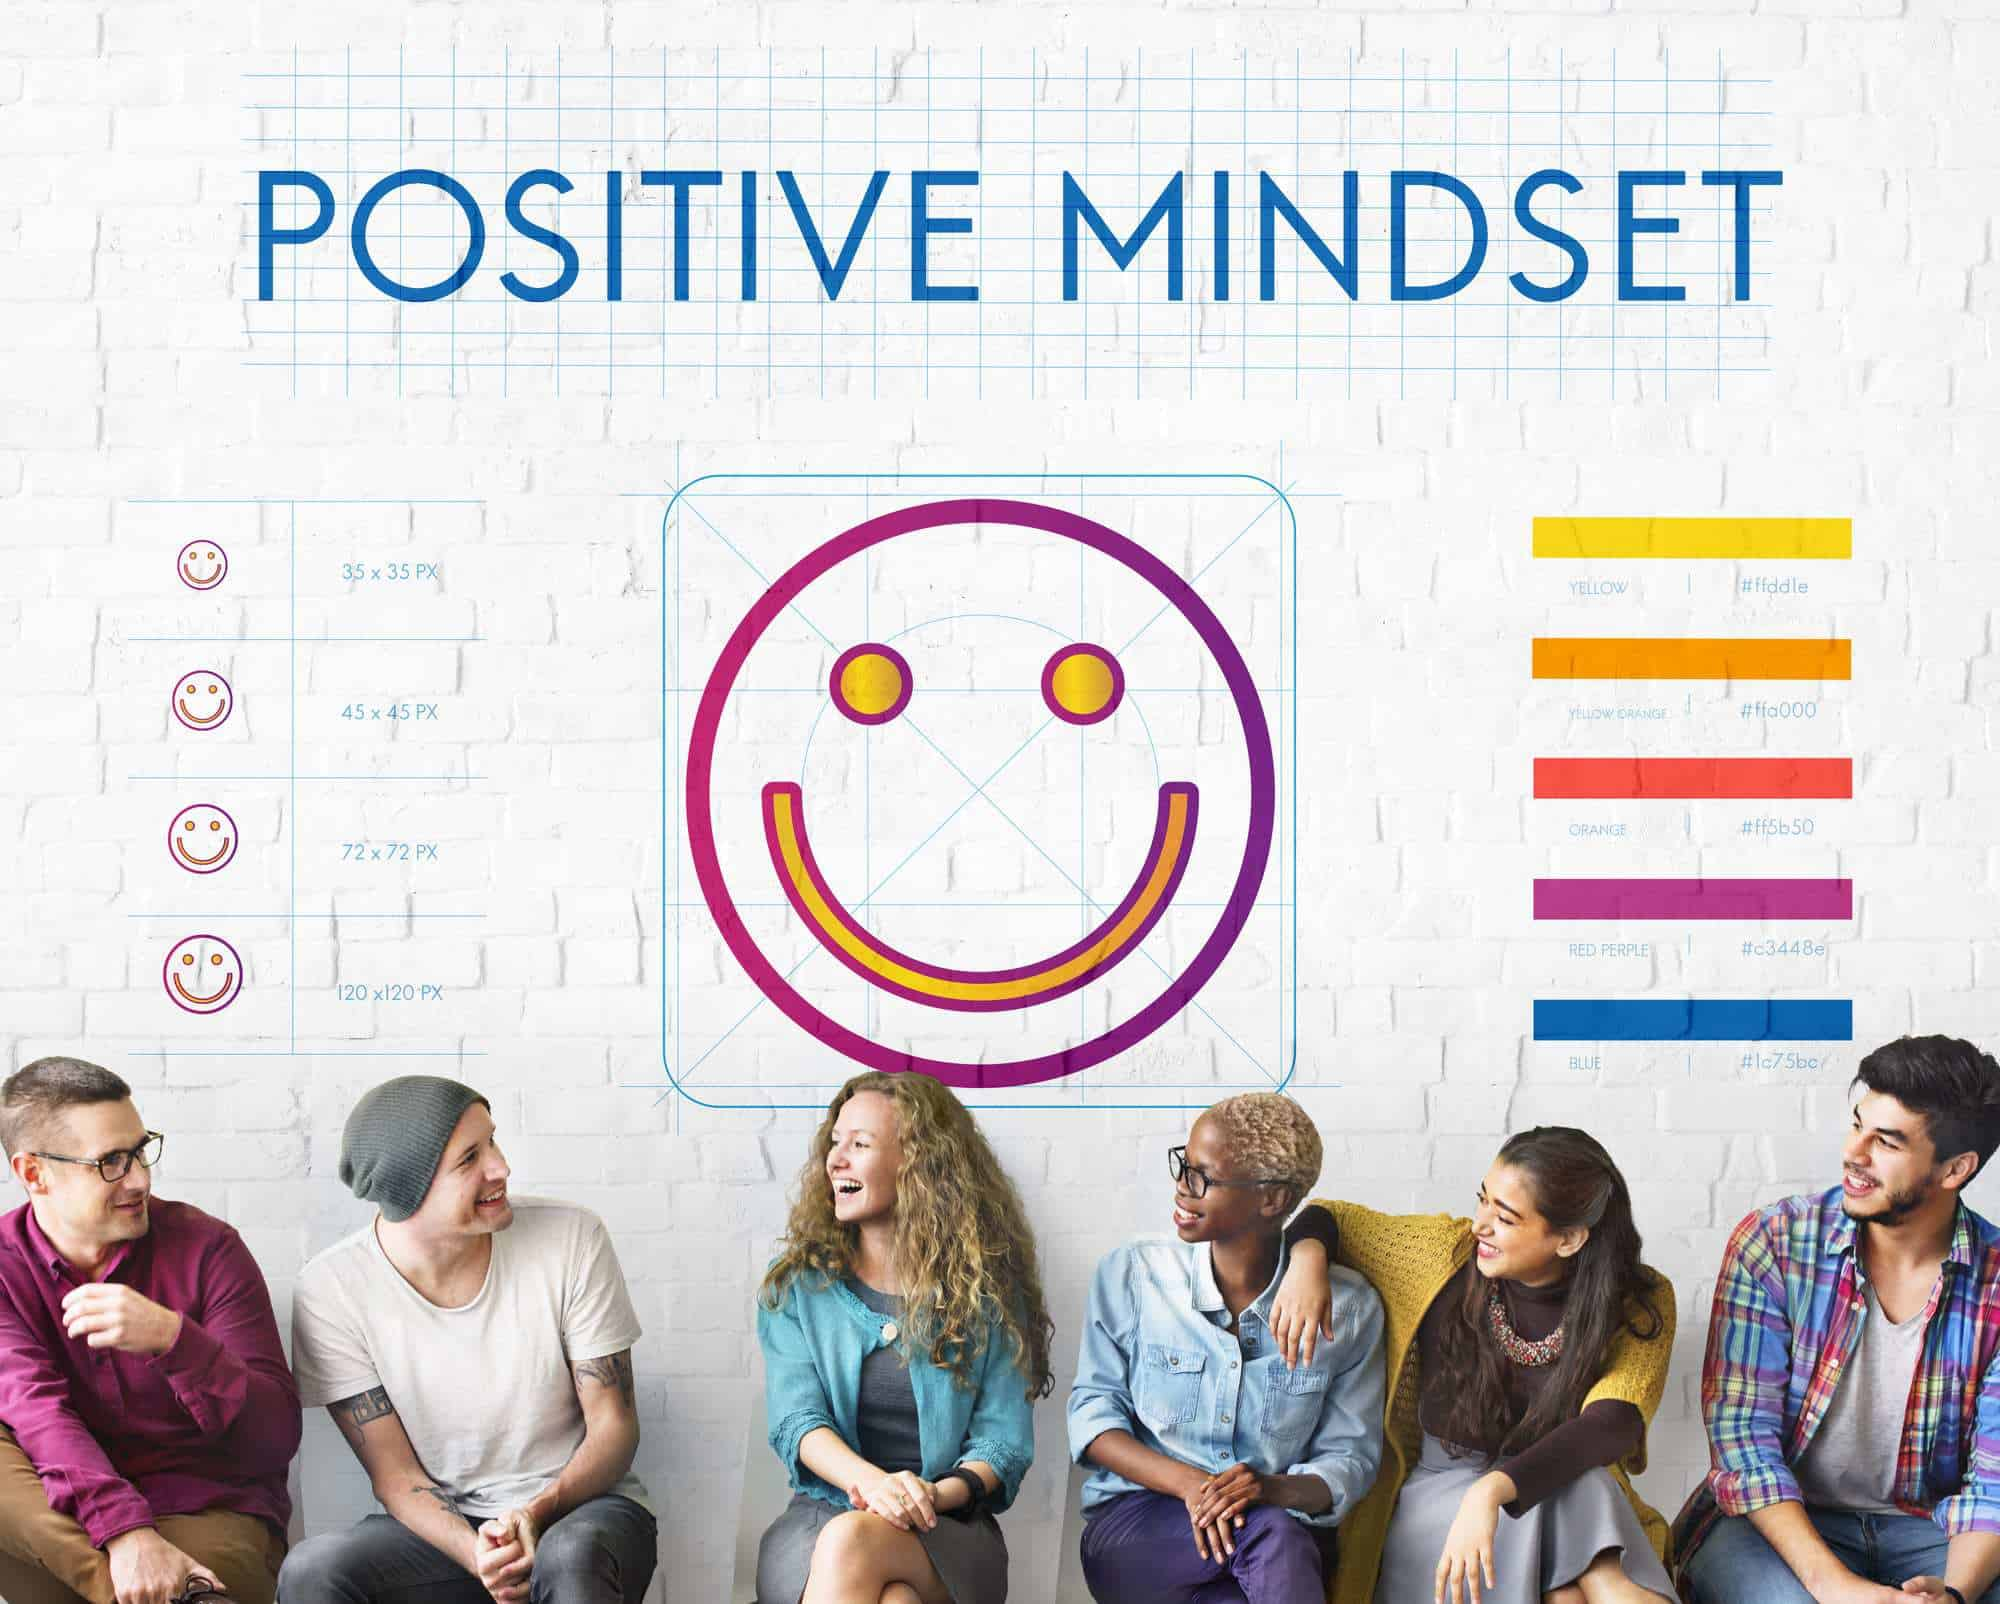 It's Time To Unleash Your Positive Mindset